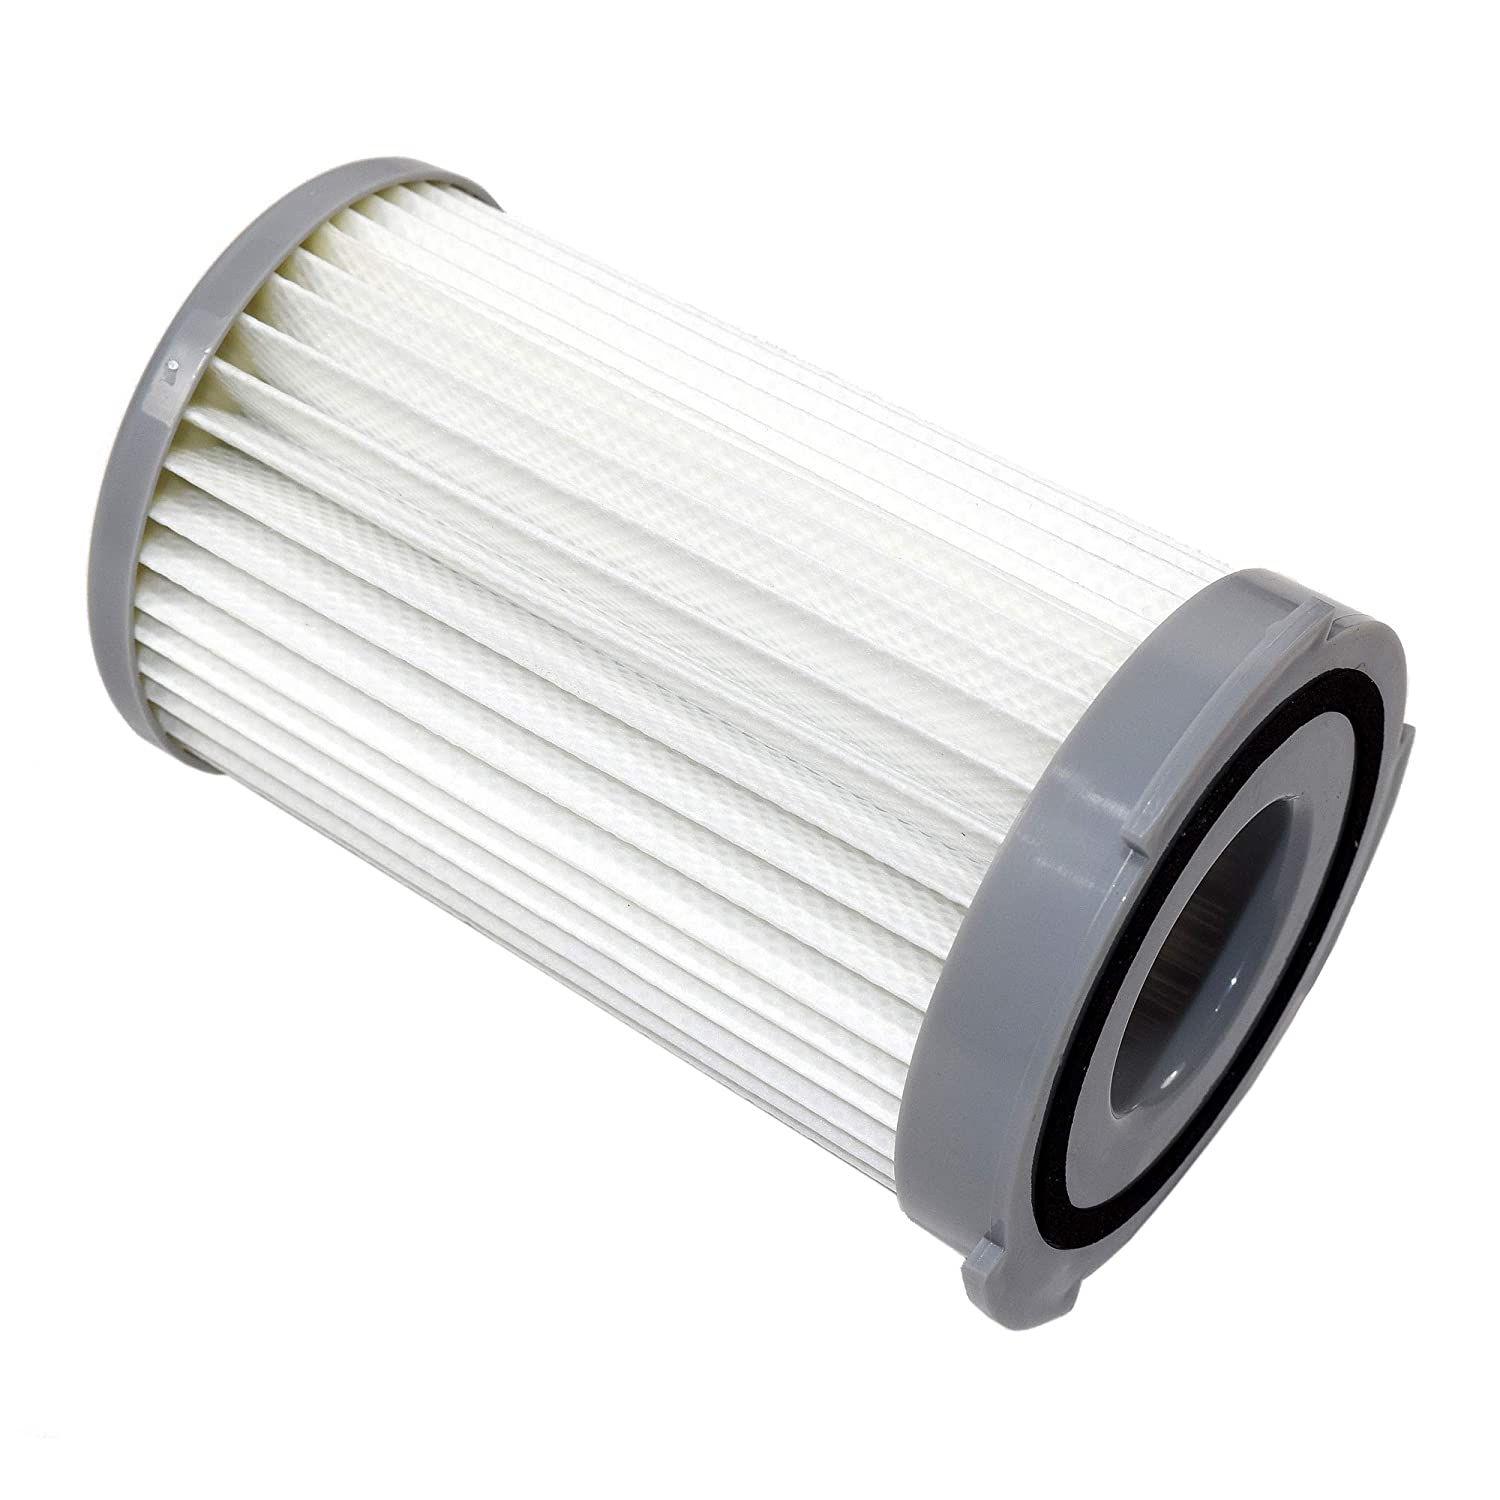 HQRP Dust Cup Filter for Eureka DCF-23 DCF23 68947 Replacement fits Eureka 940A 940A-1 940A1 Pet Lover Canister Vacuum Cleaner + HQRP Coaster 884667809101801